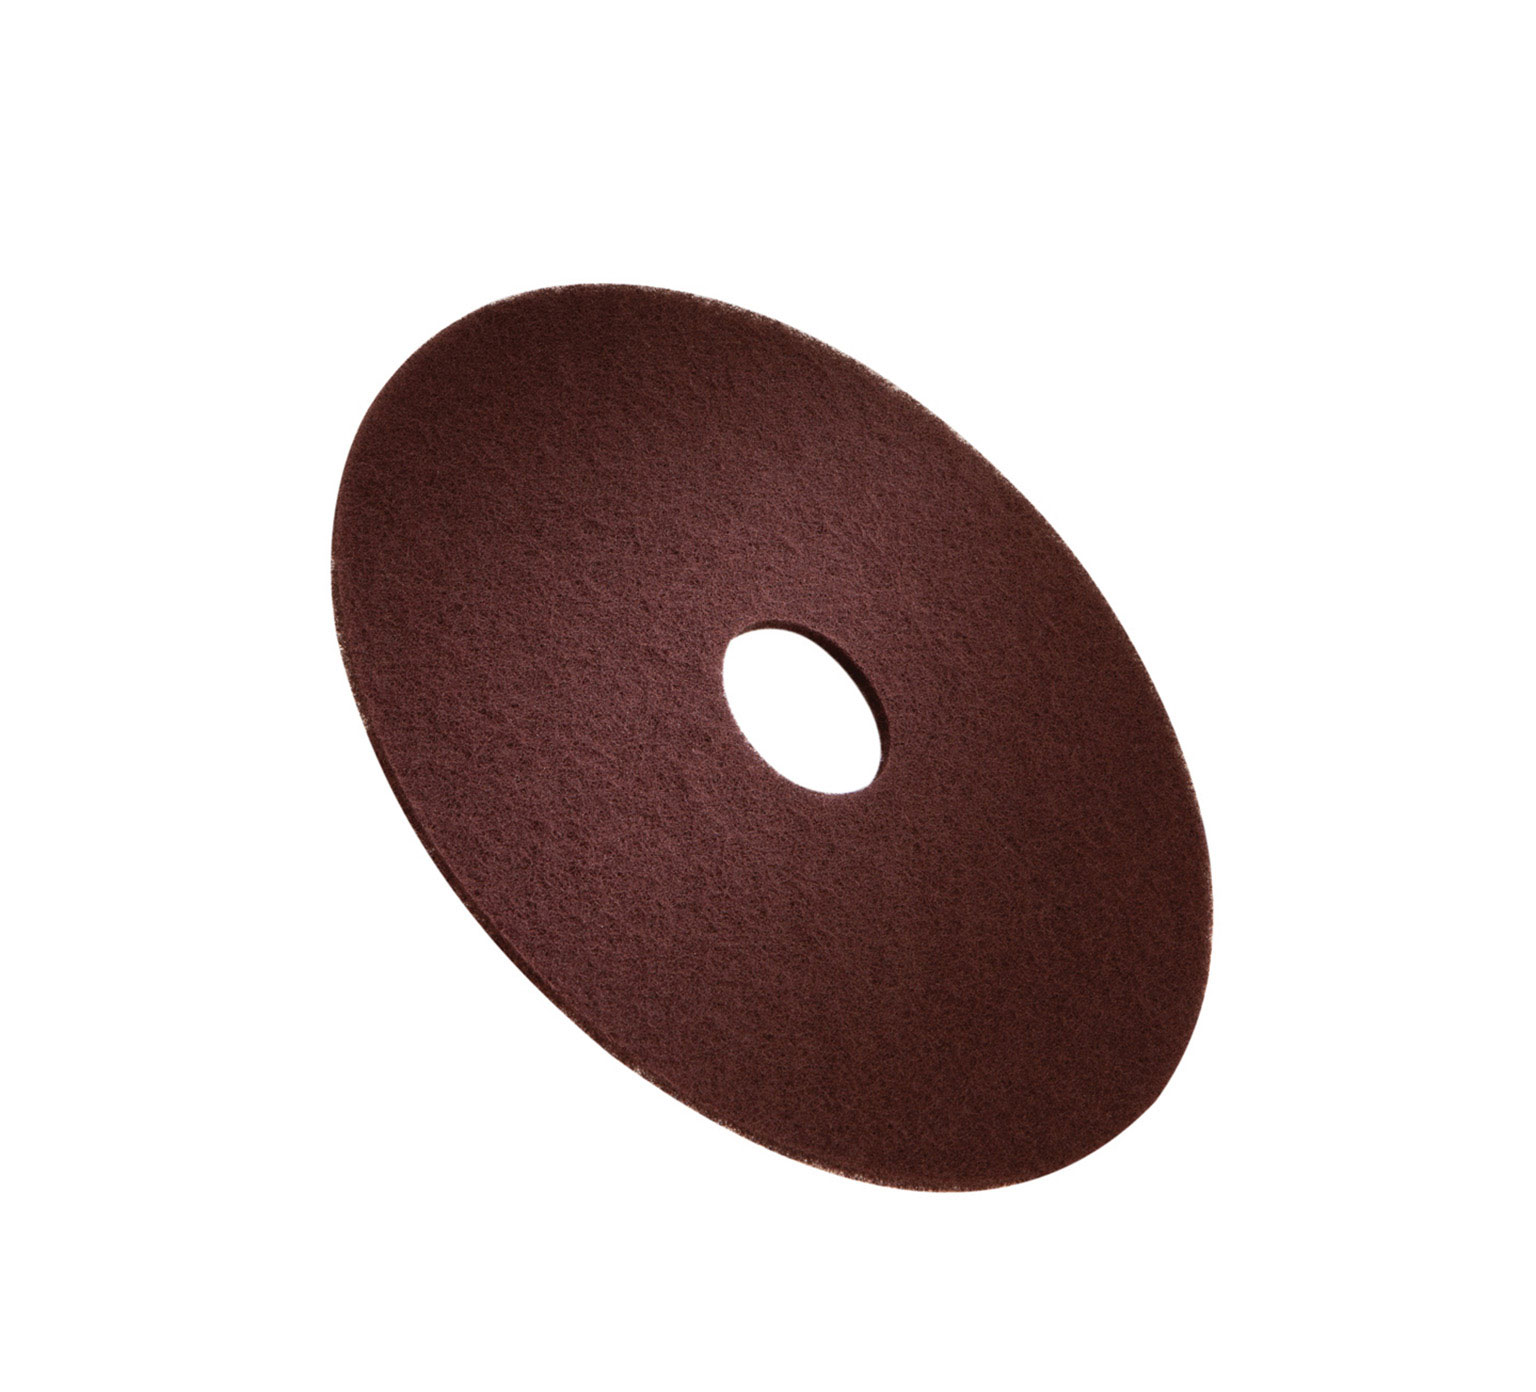 1051028 3M Maroon Stripping Pad – 17 in / 432 mm alt 1